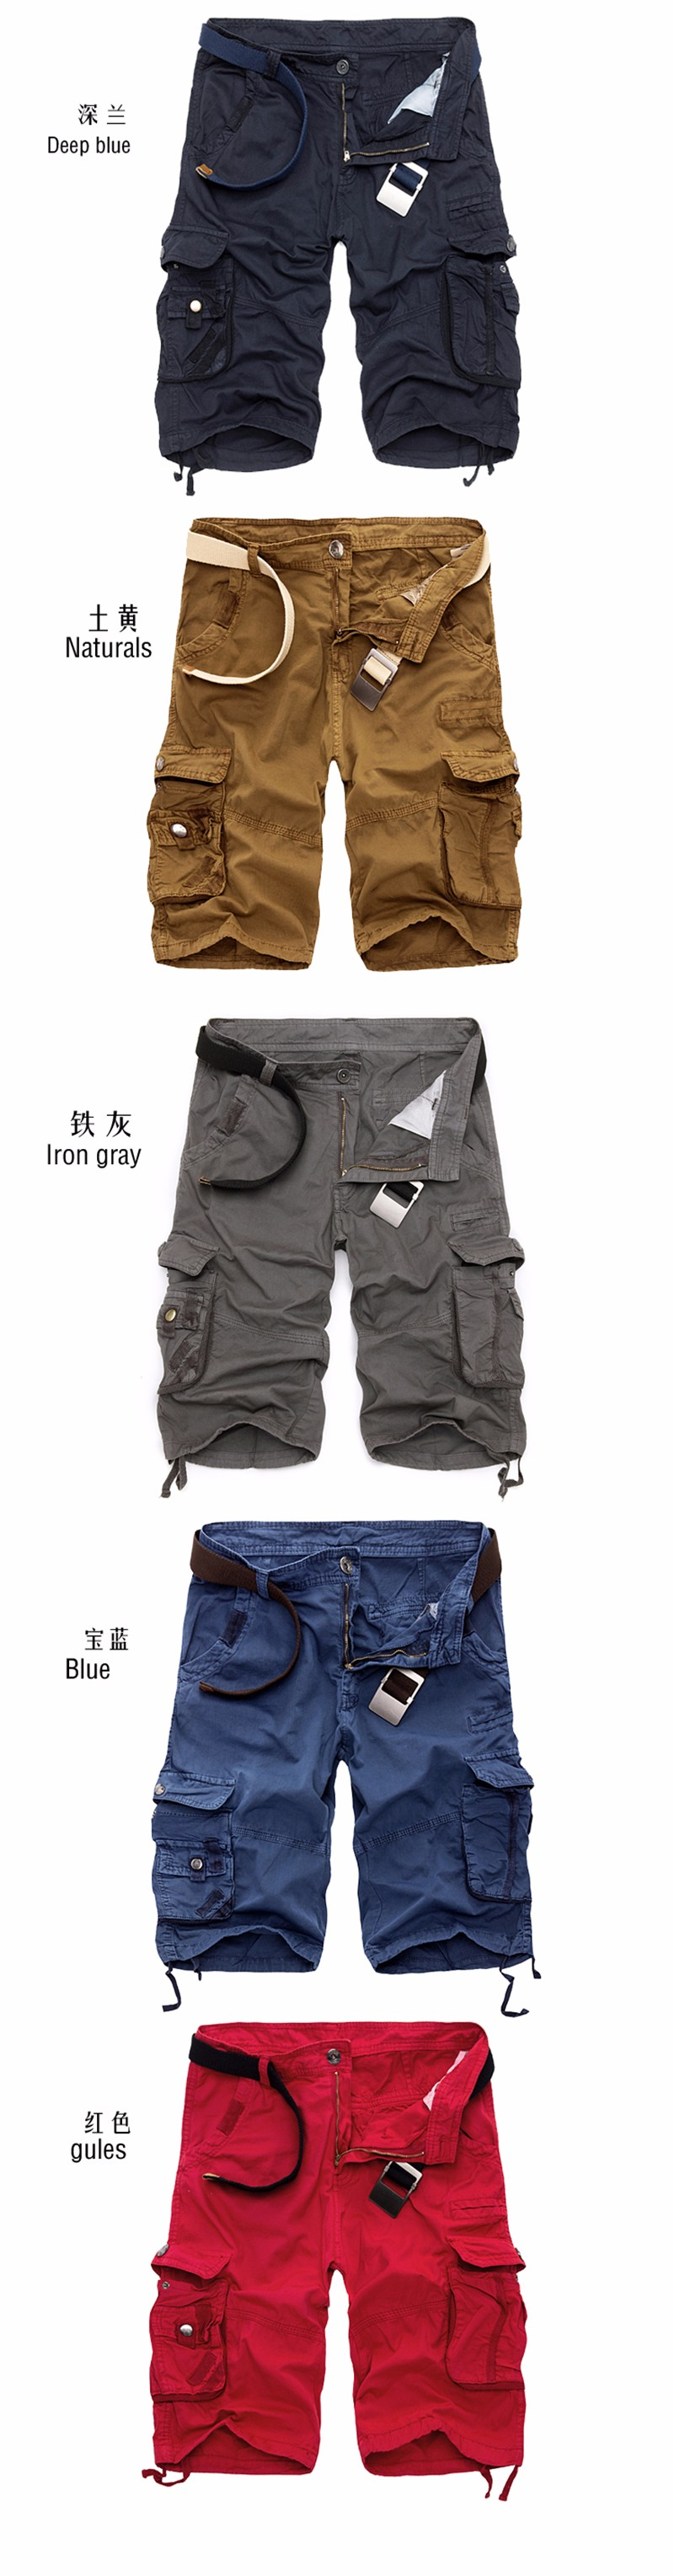 Camouflage Cargo Shorts for Men